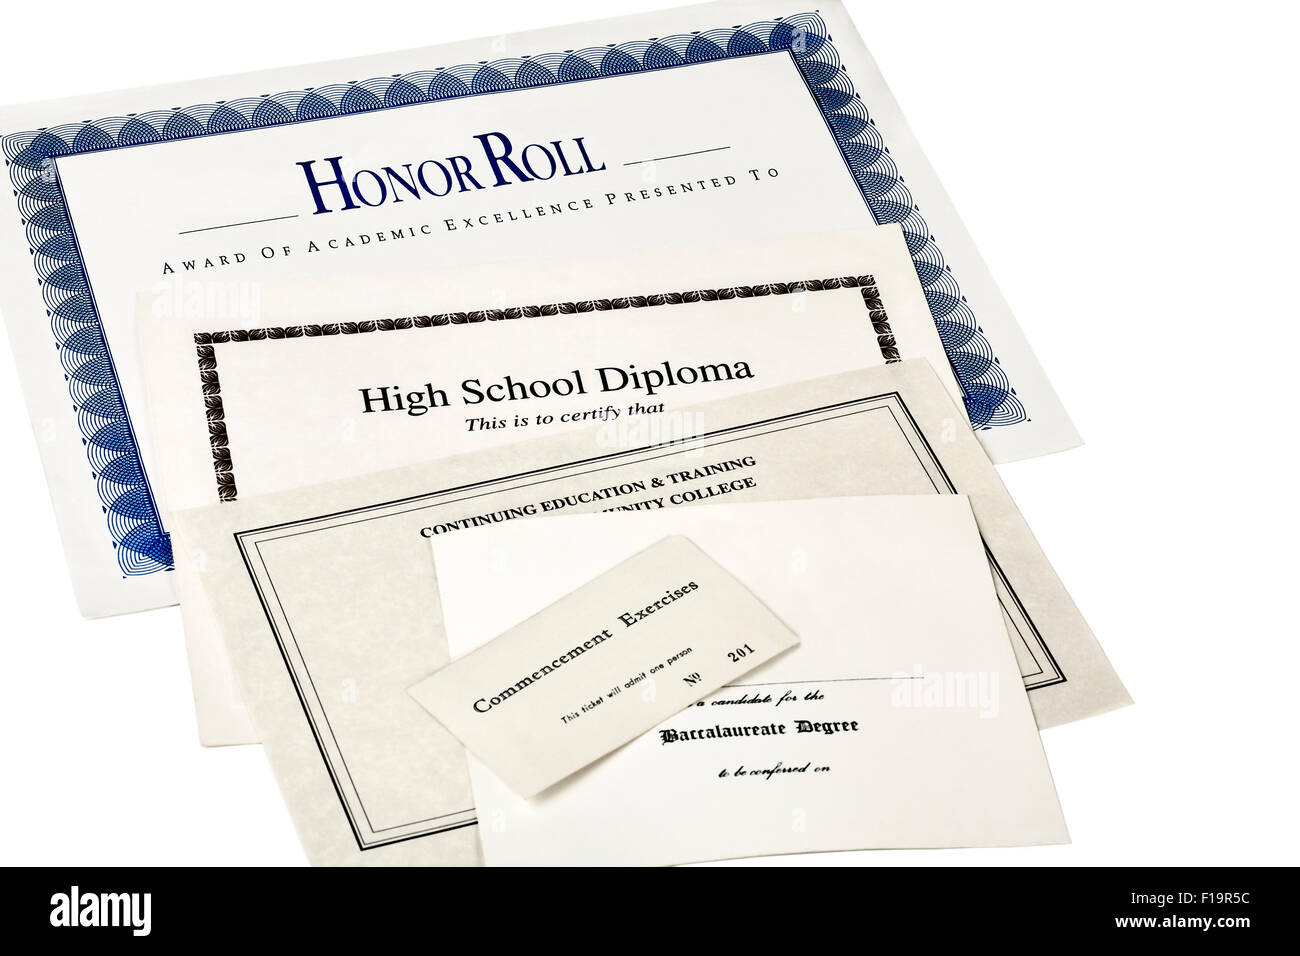 Education certification documents including high school diploma,commencement ticket, continuing education certificate - Stock Image